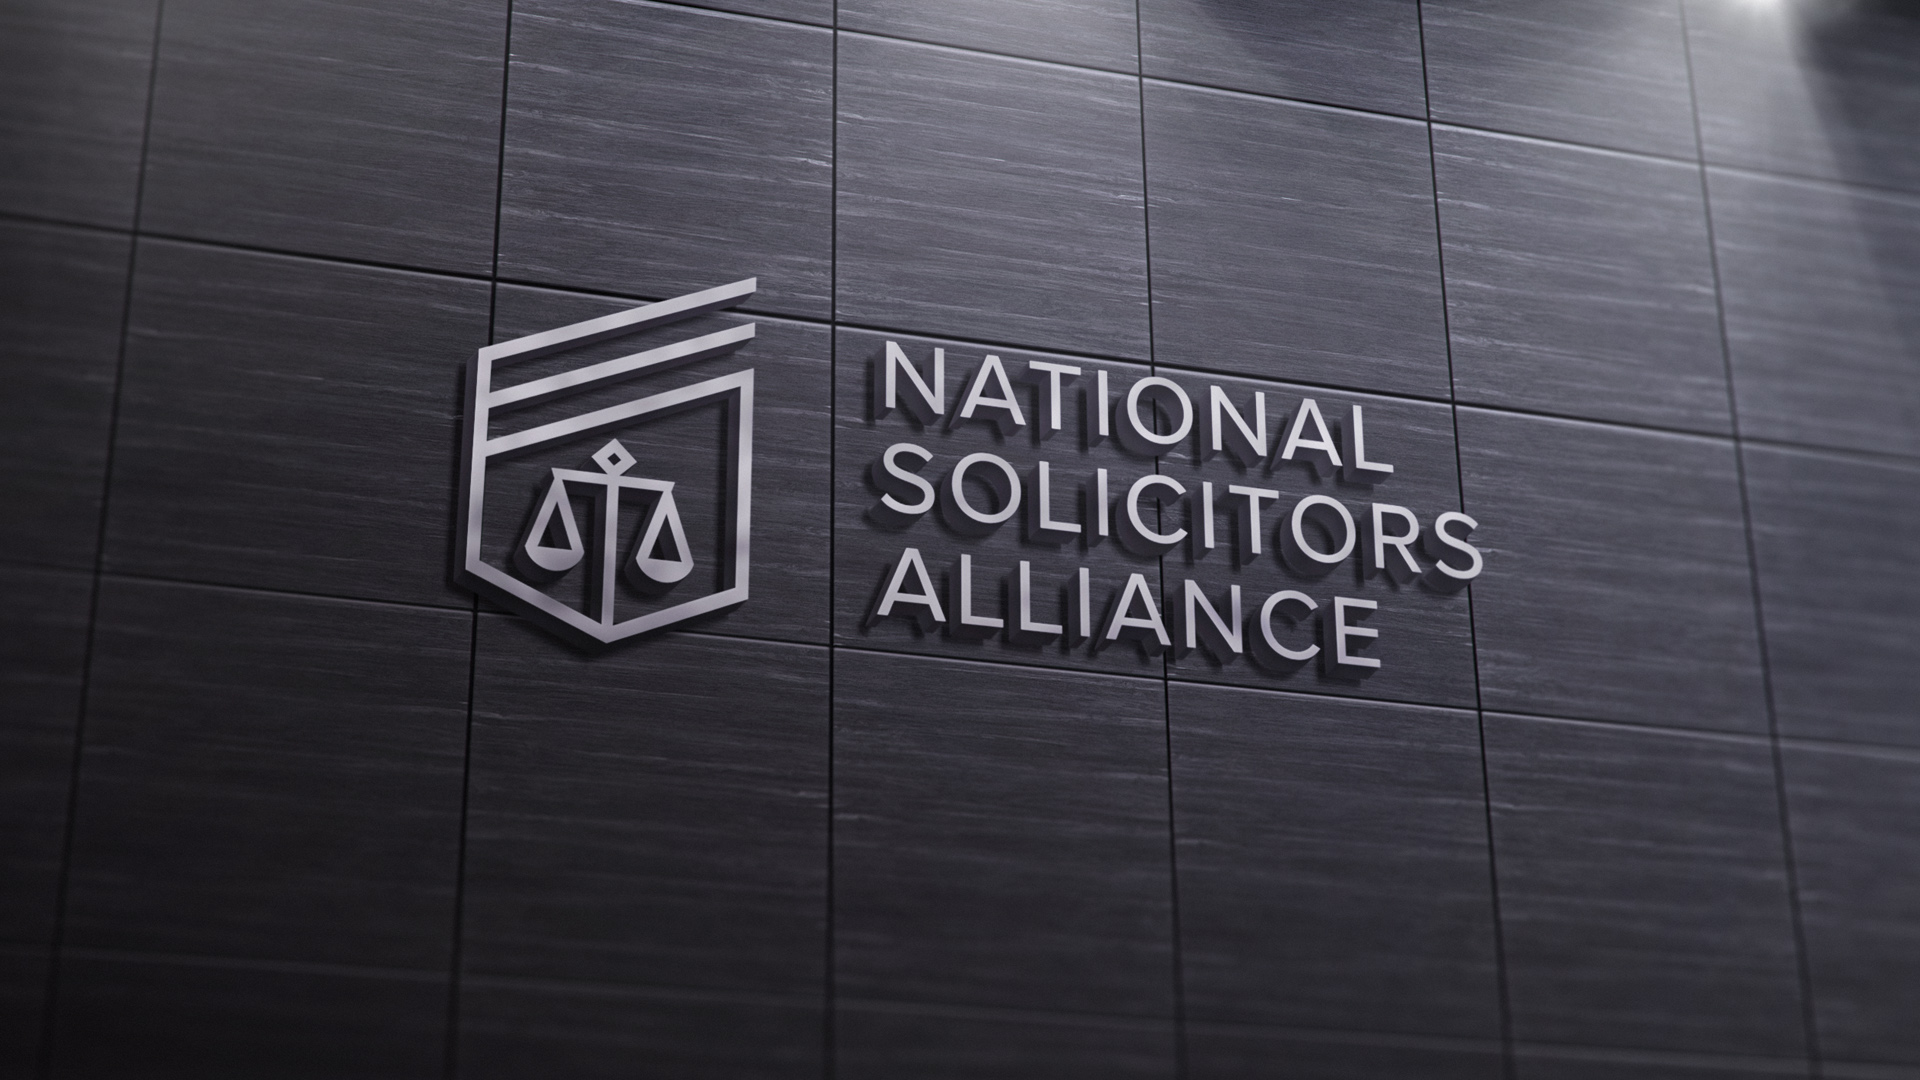 National Solicitors Alliance sign